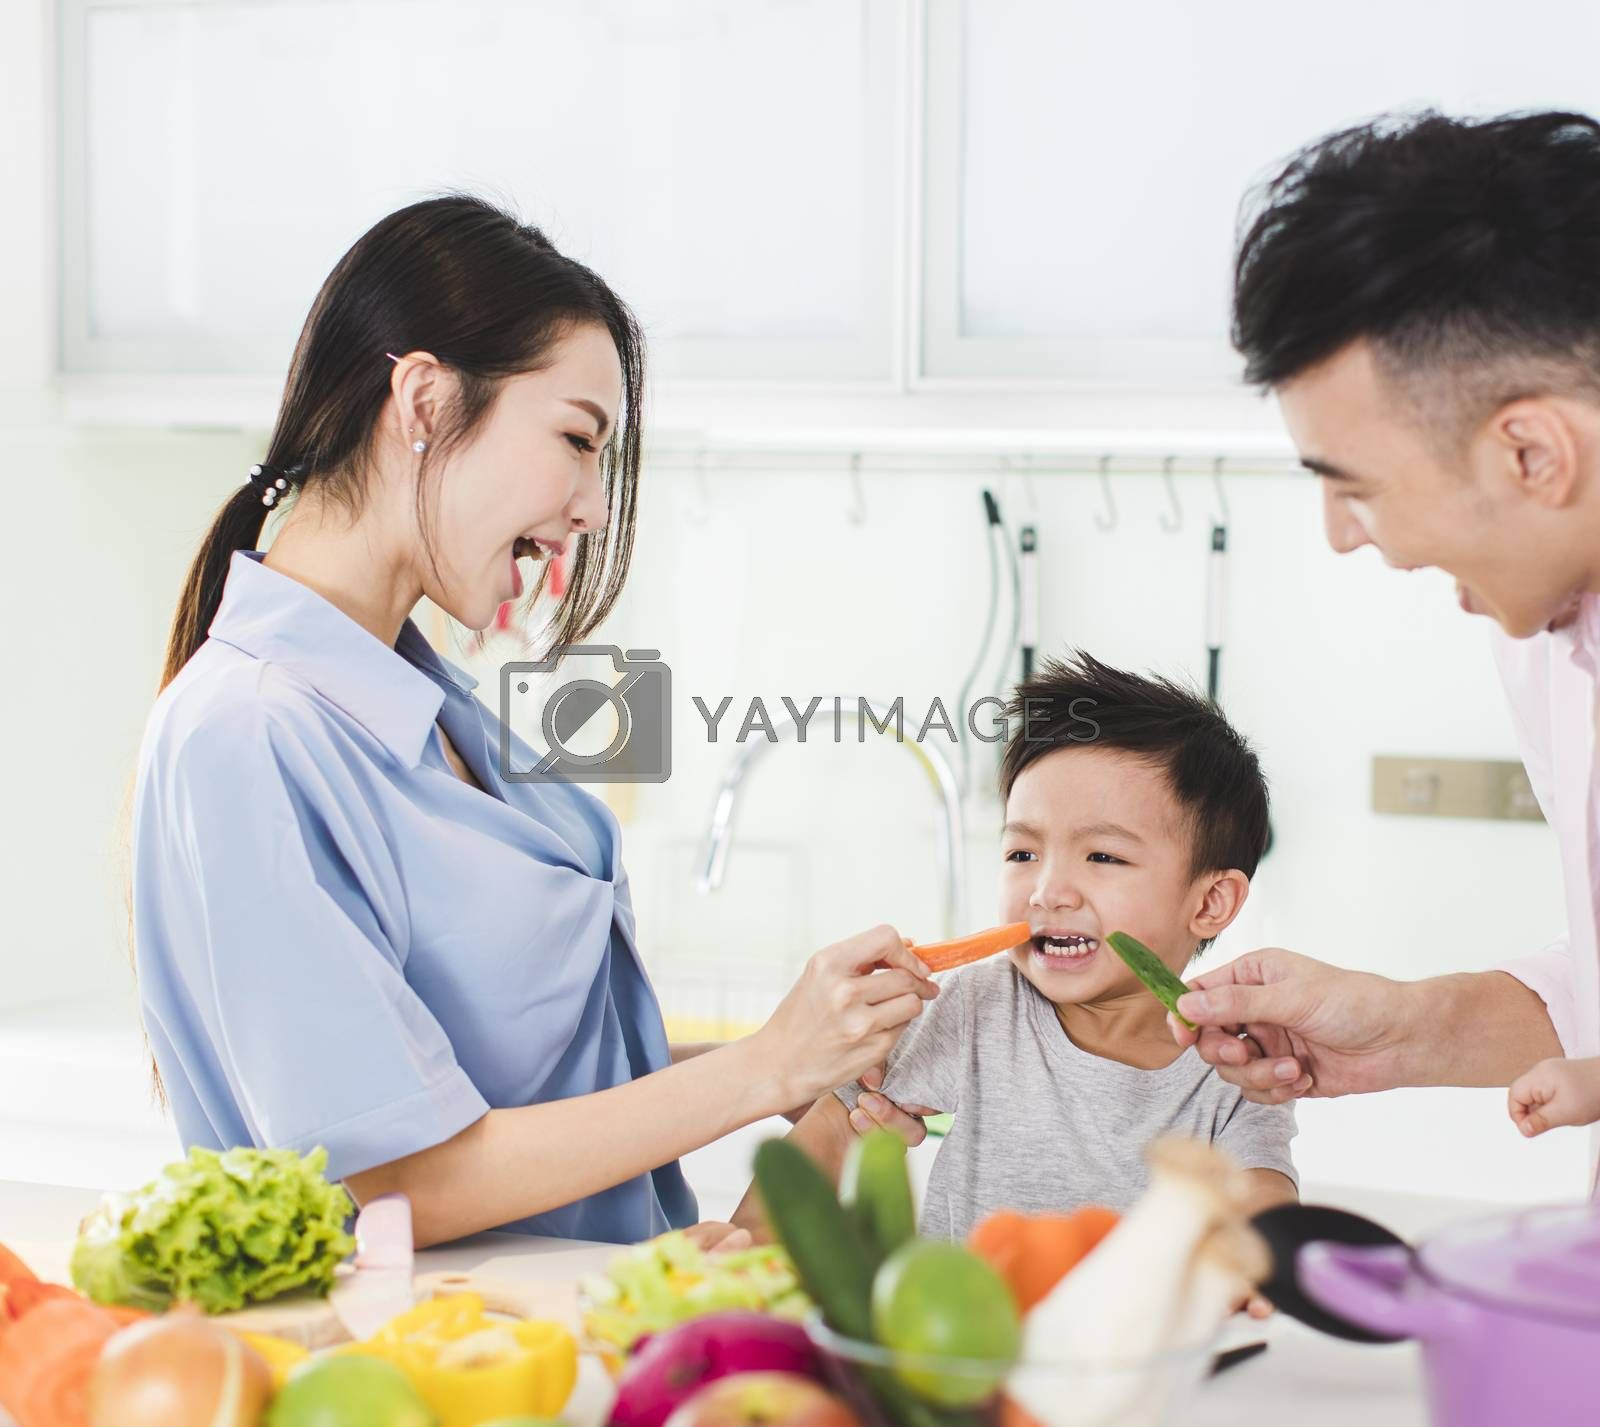 parent feeding boy a piece of  carrot in kitchen by tomwang